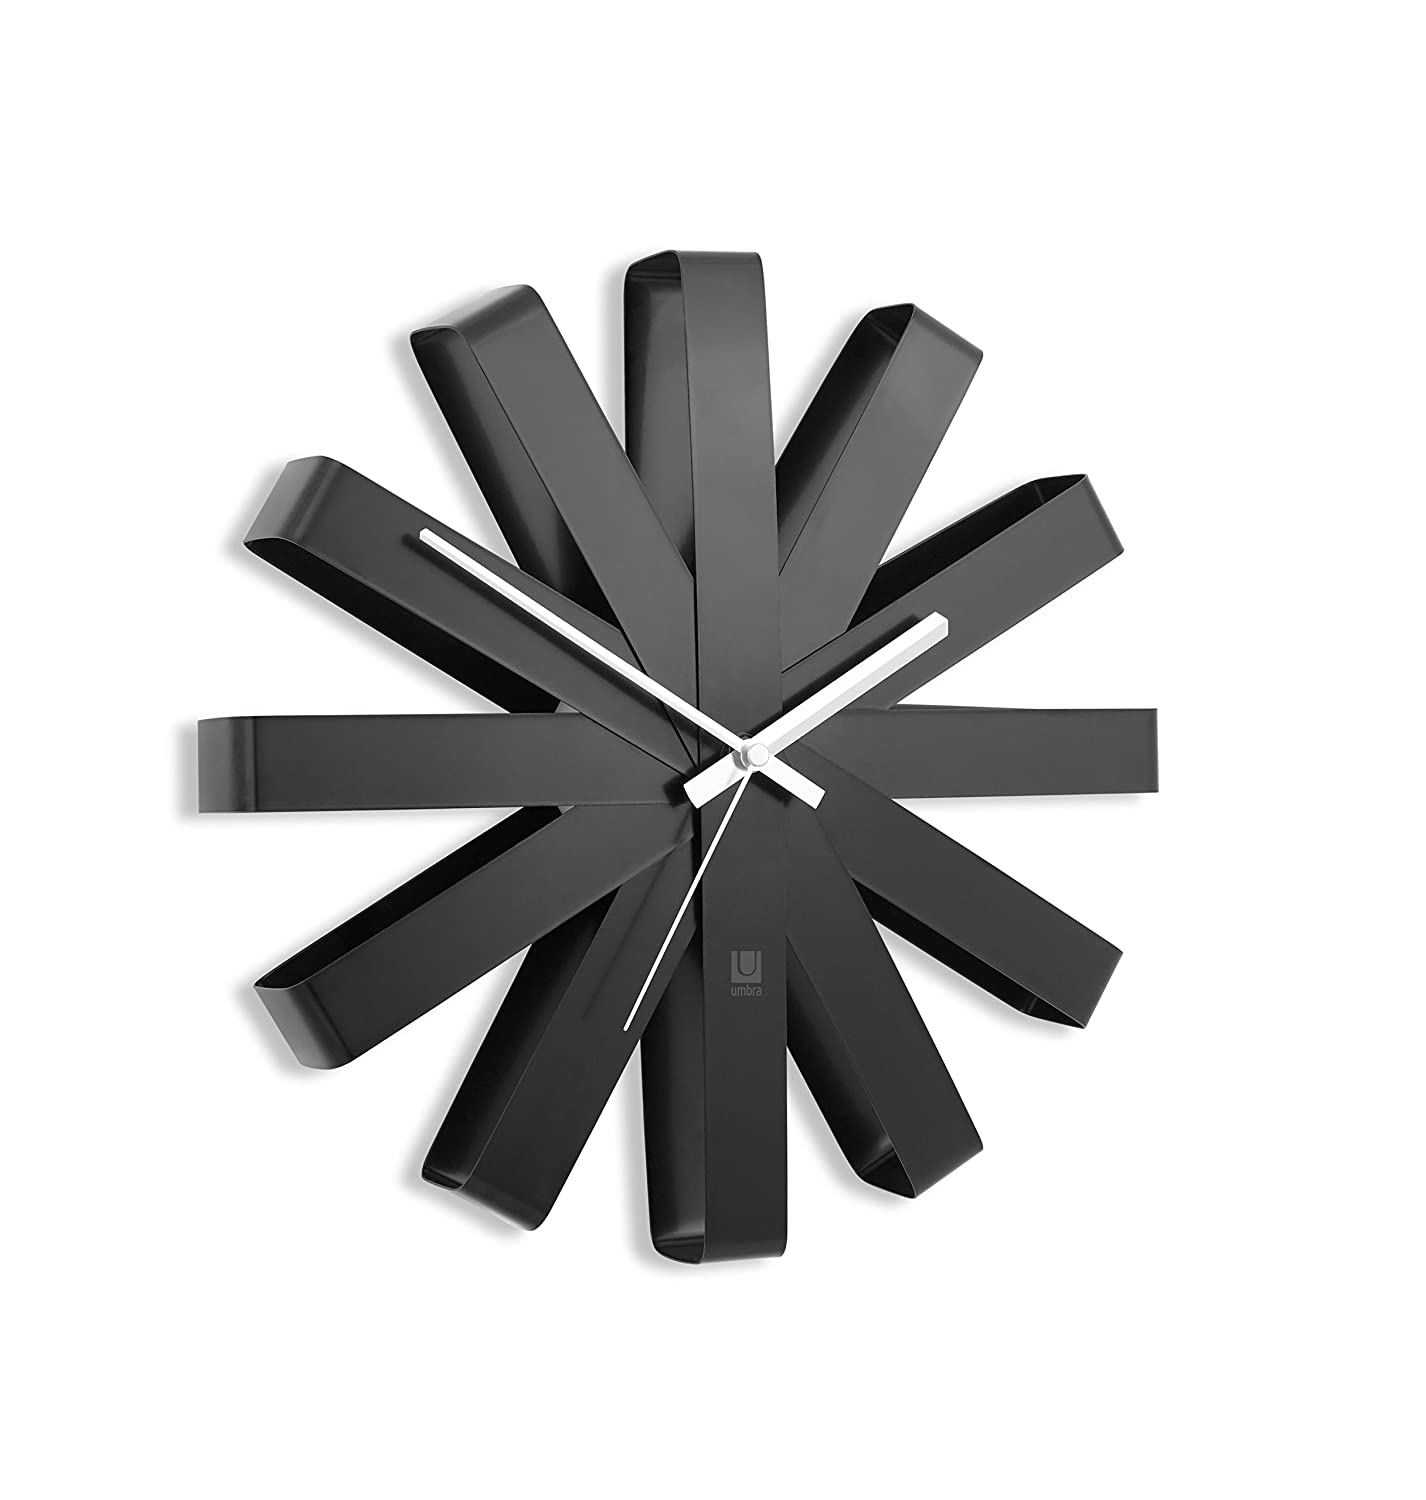 Umbra ribbon horloge murale acier brossé nickel 30 cm: amazon.fr ...